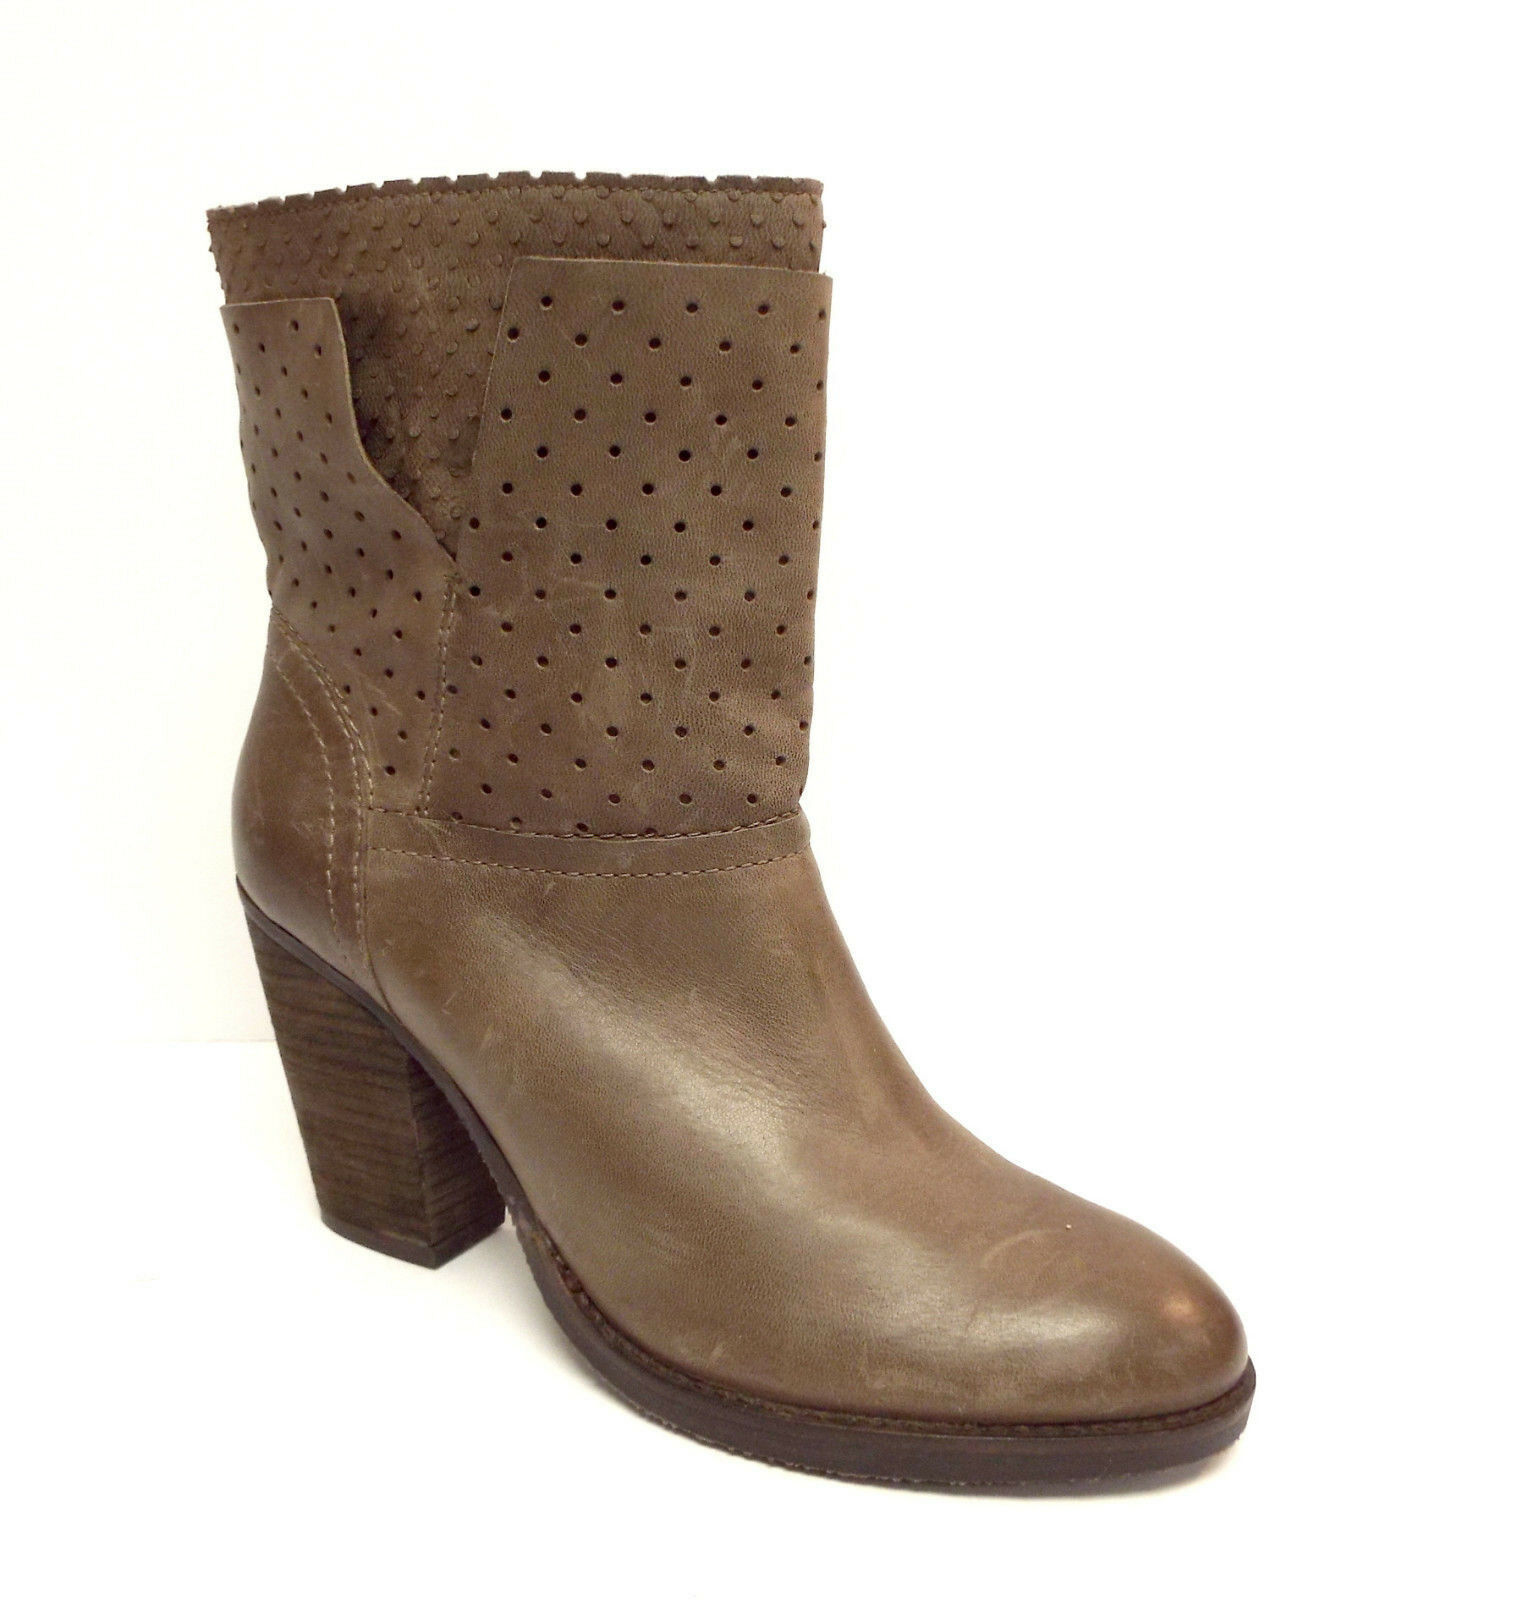 STEVEN Steve Madden Size 9 KOBRRA Taupe Leather Perforated Ankle Boots